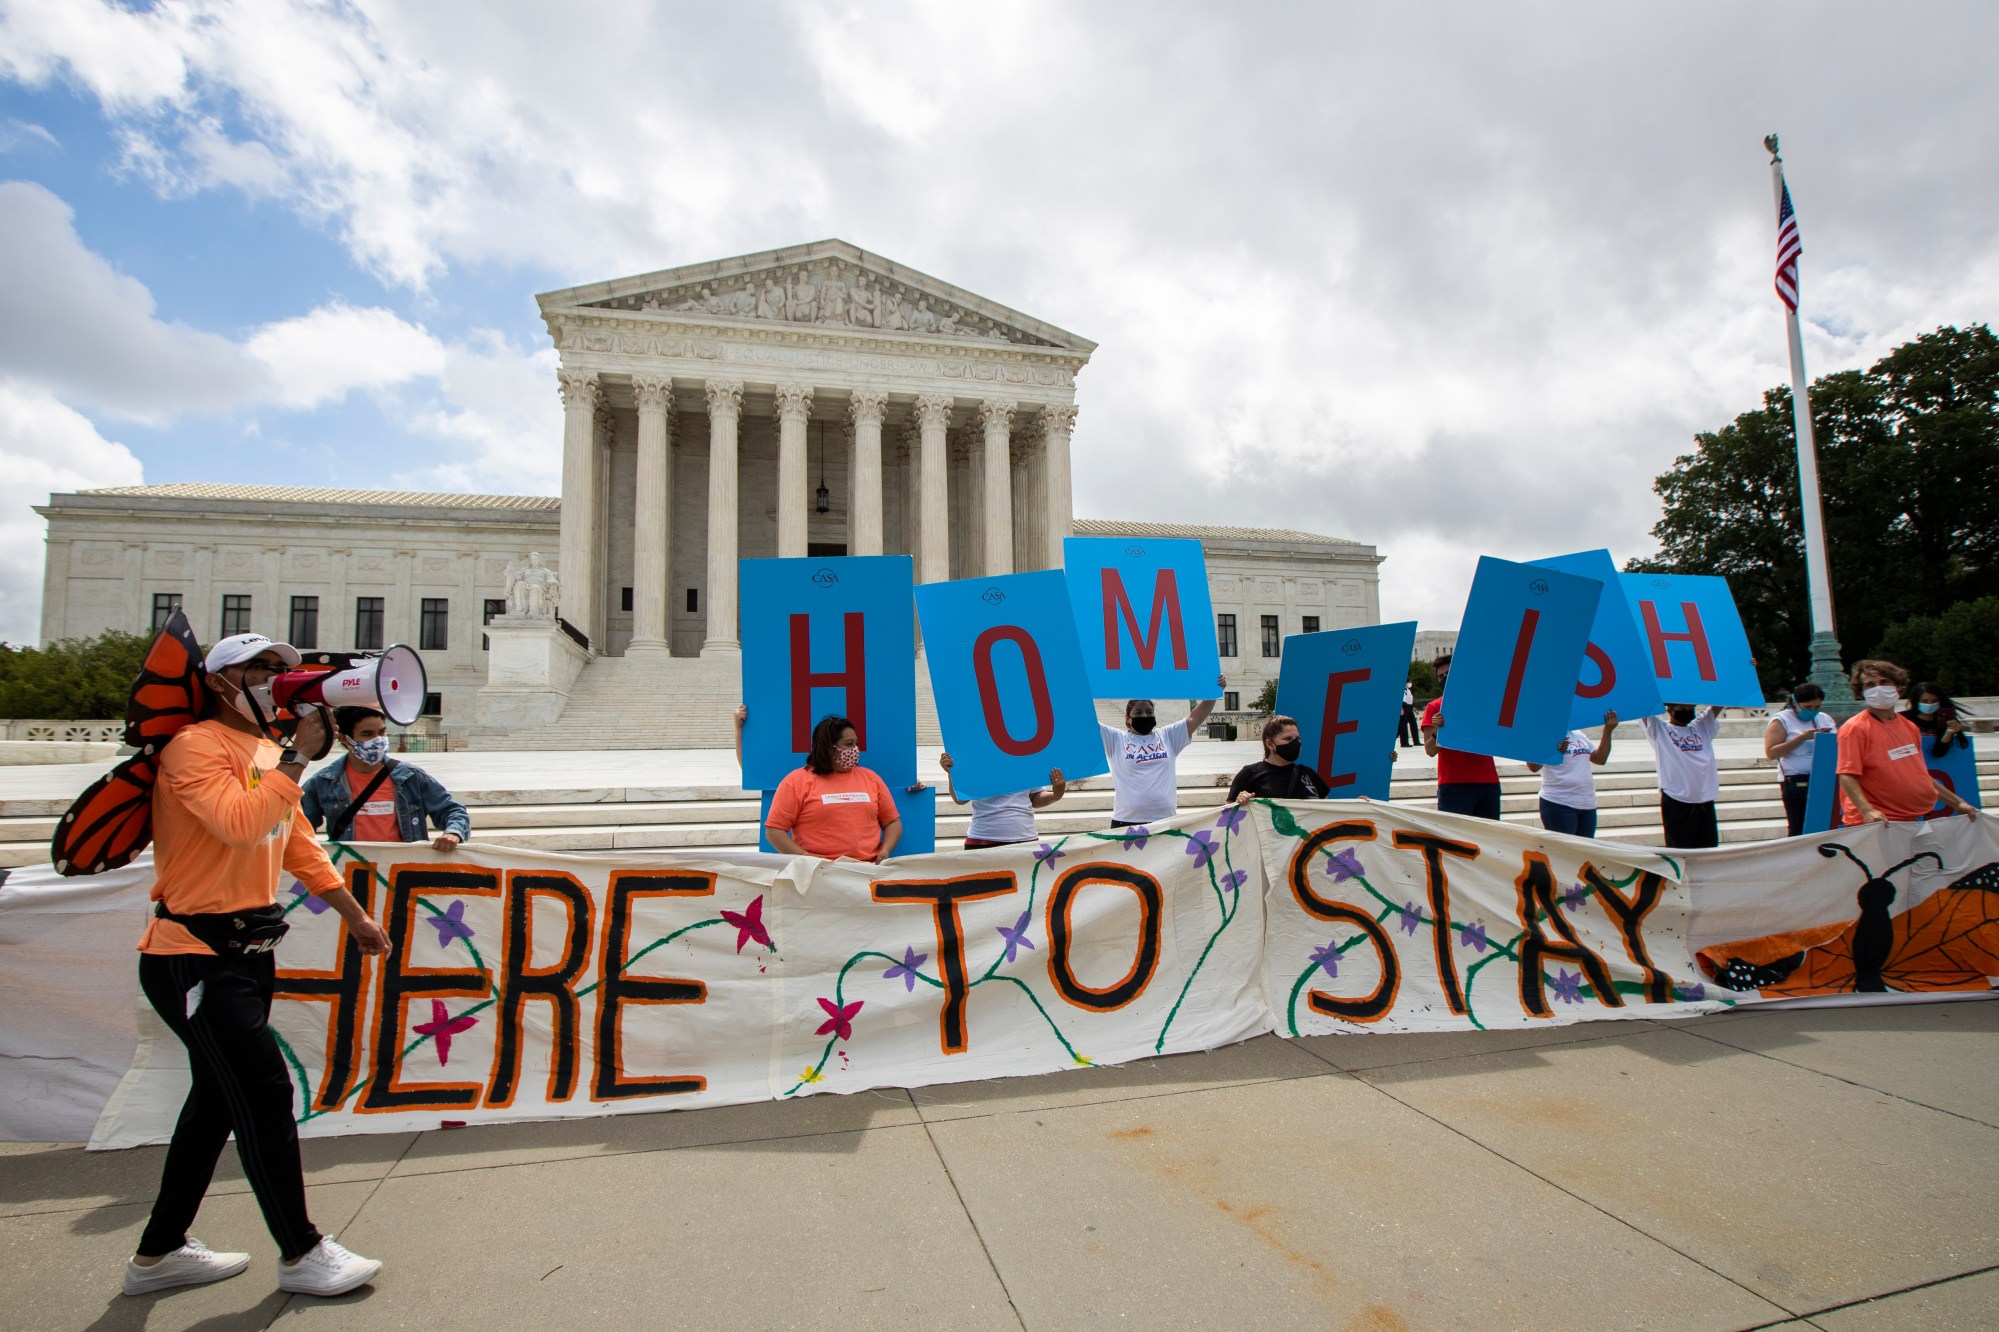 Deferred Action for Childhood Arrivals (DACA) recipient Roberto Martinez, left, celebrates with other DACA recipients in front of the Supreme Court on Thursday, June 18, 2020, in Washington. The Supreme Court rejected President Donald Trump's effort to end legal protections for 650,000 young immigrants, a stunning rebuke to the president in the midst of his reelection campaign. (AP Photo/Manuel Balce Ceneta)